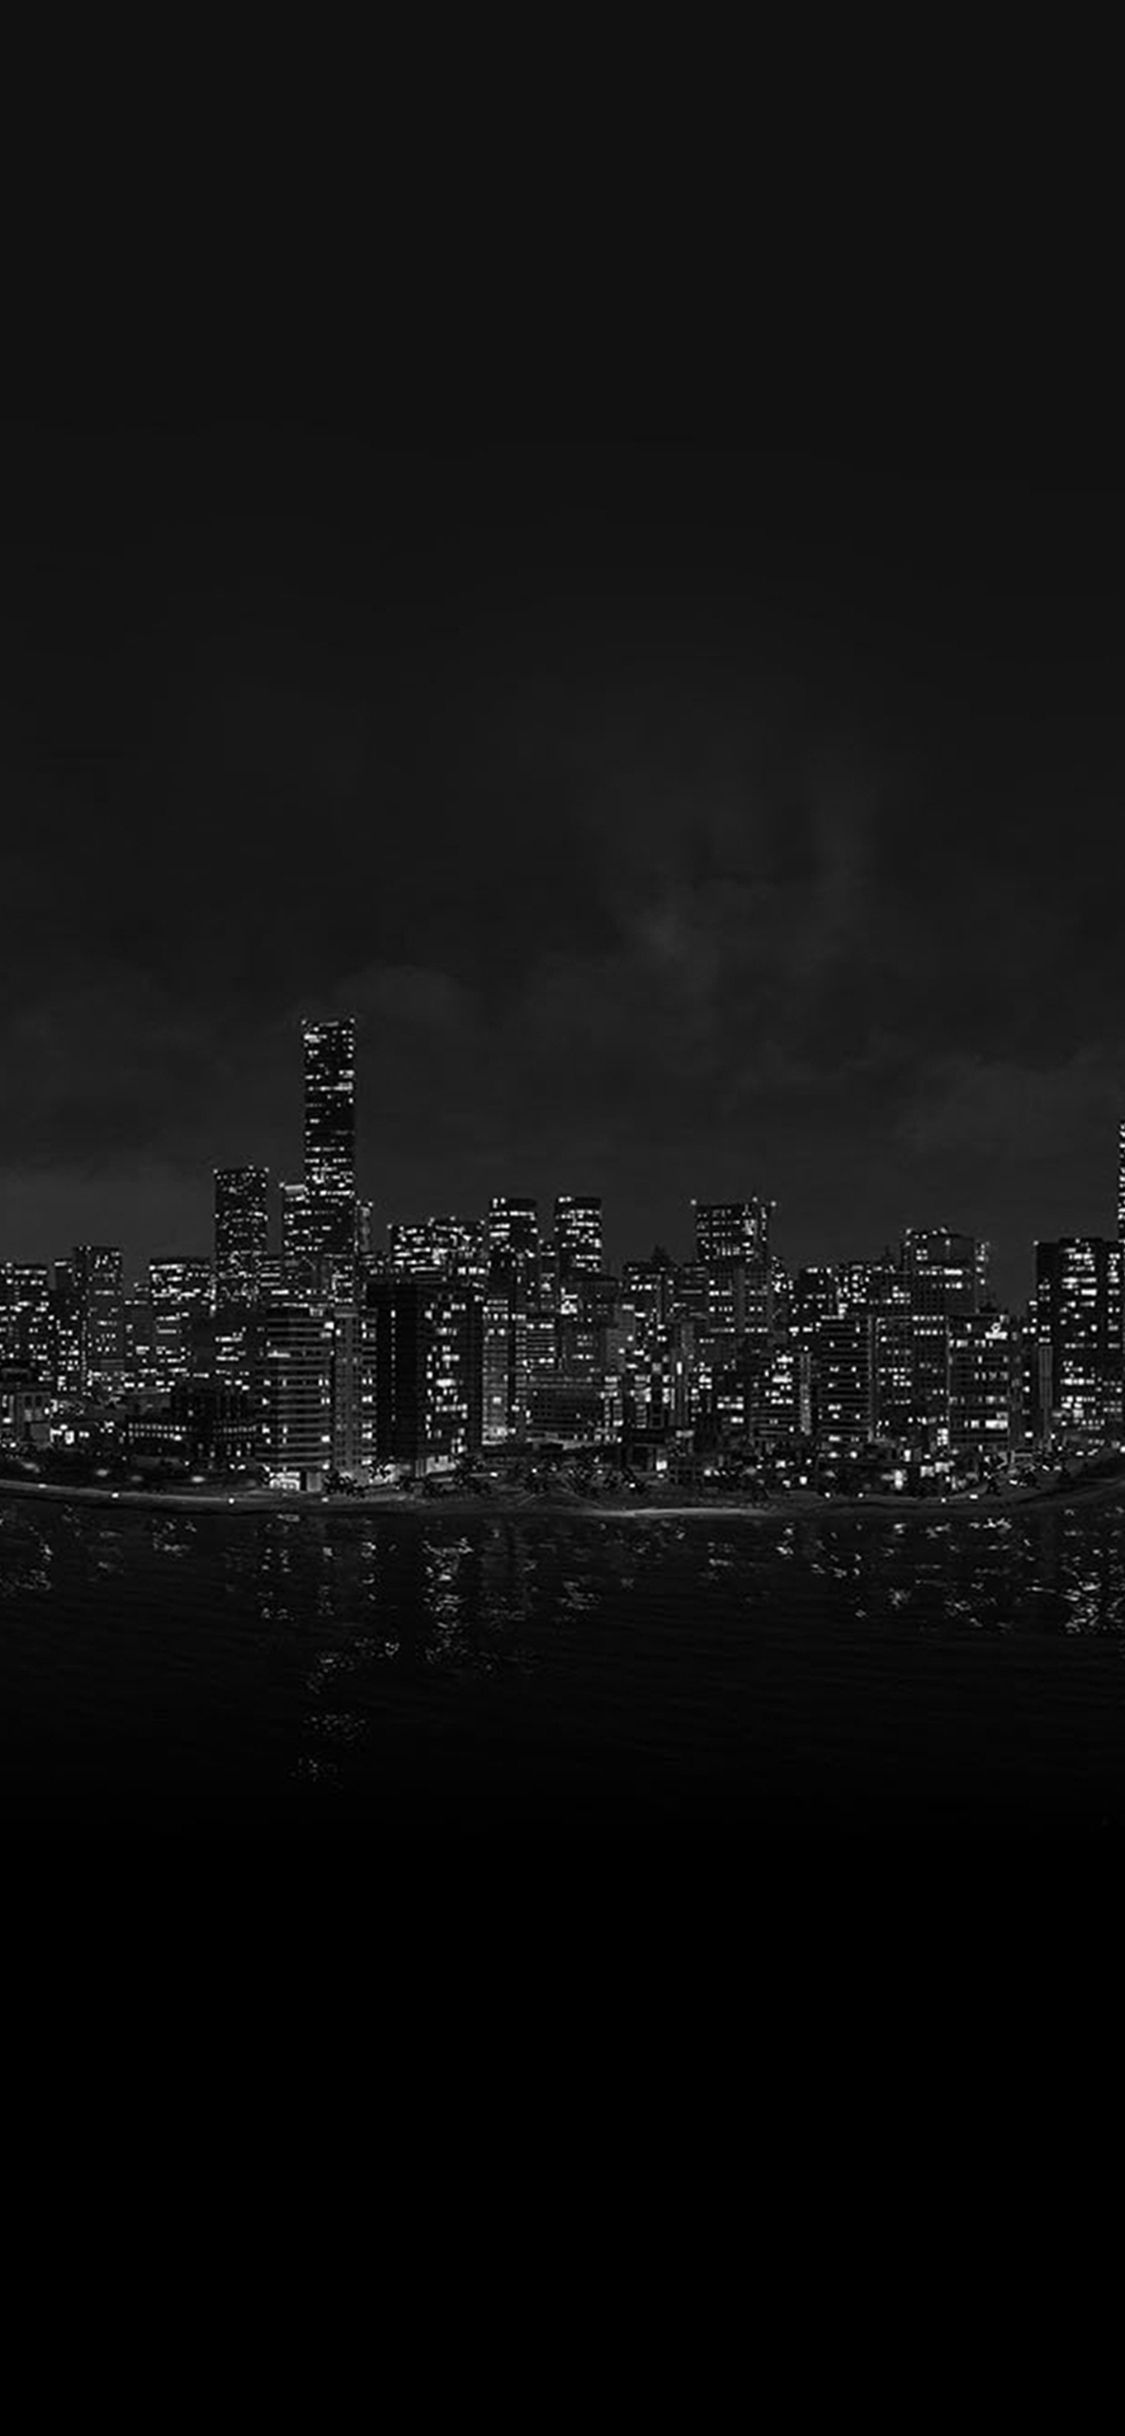 Watchdog Night City Light View From Sea Iphone X Wallpaper City Lights Wallpaper Black Phone Wallpaper Dark Wallpaper